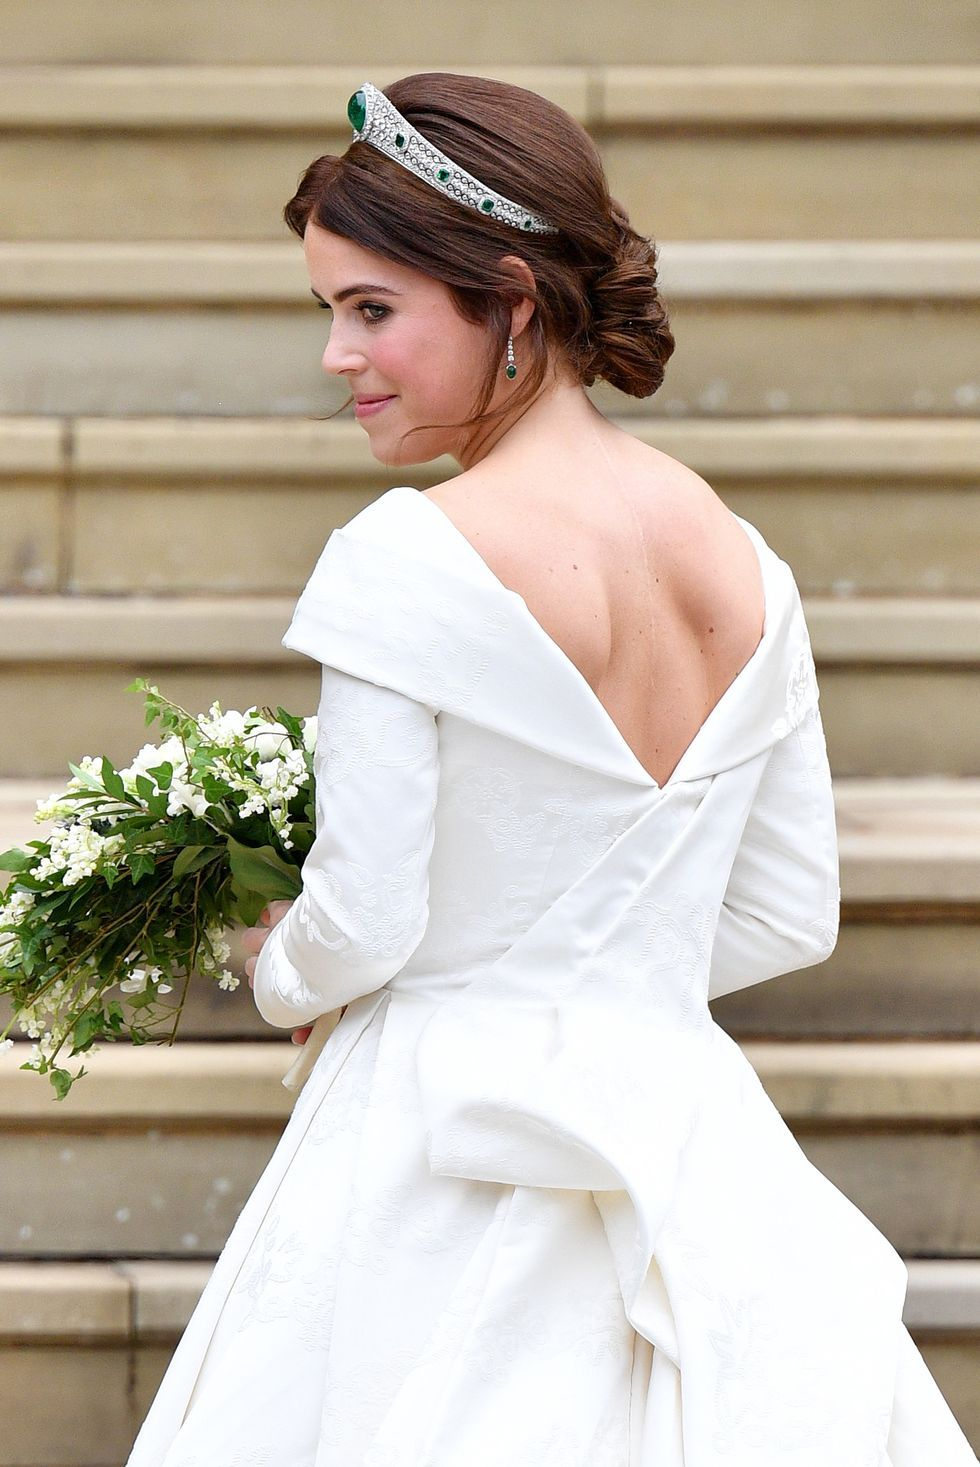 76fdf345064 The 40 Most Scandalous Wedding Dresses of All Time - Famous Wedding Gowns